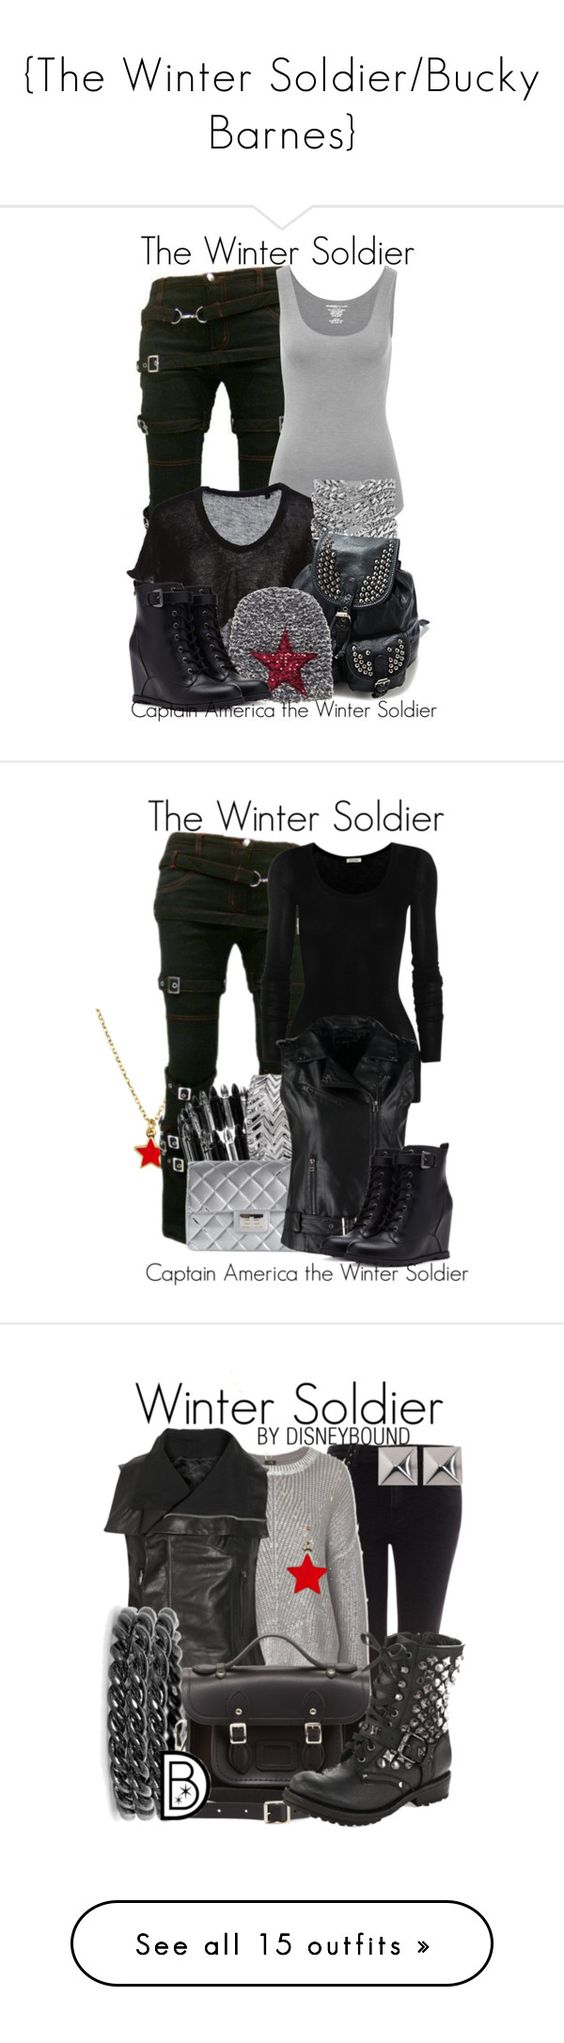 """""""{The Winter Soldier/Bucky Barnes}"""" by hannahluladybuggirl ❤ liked on Polyvore featuring Majestic, Yves Saint Laurent, Forever 21, women's clothing, women, female, woman, misses, juniors and Cath Kidston"""